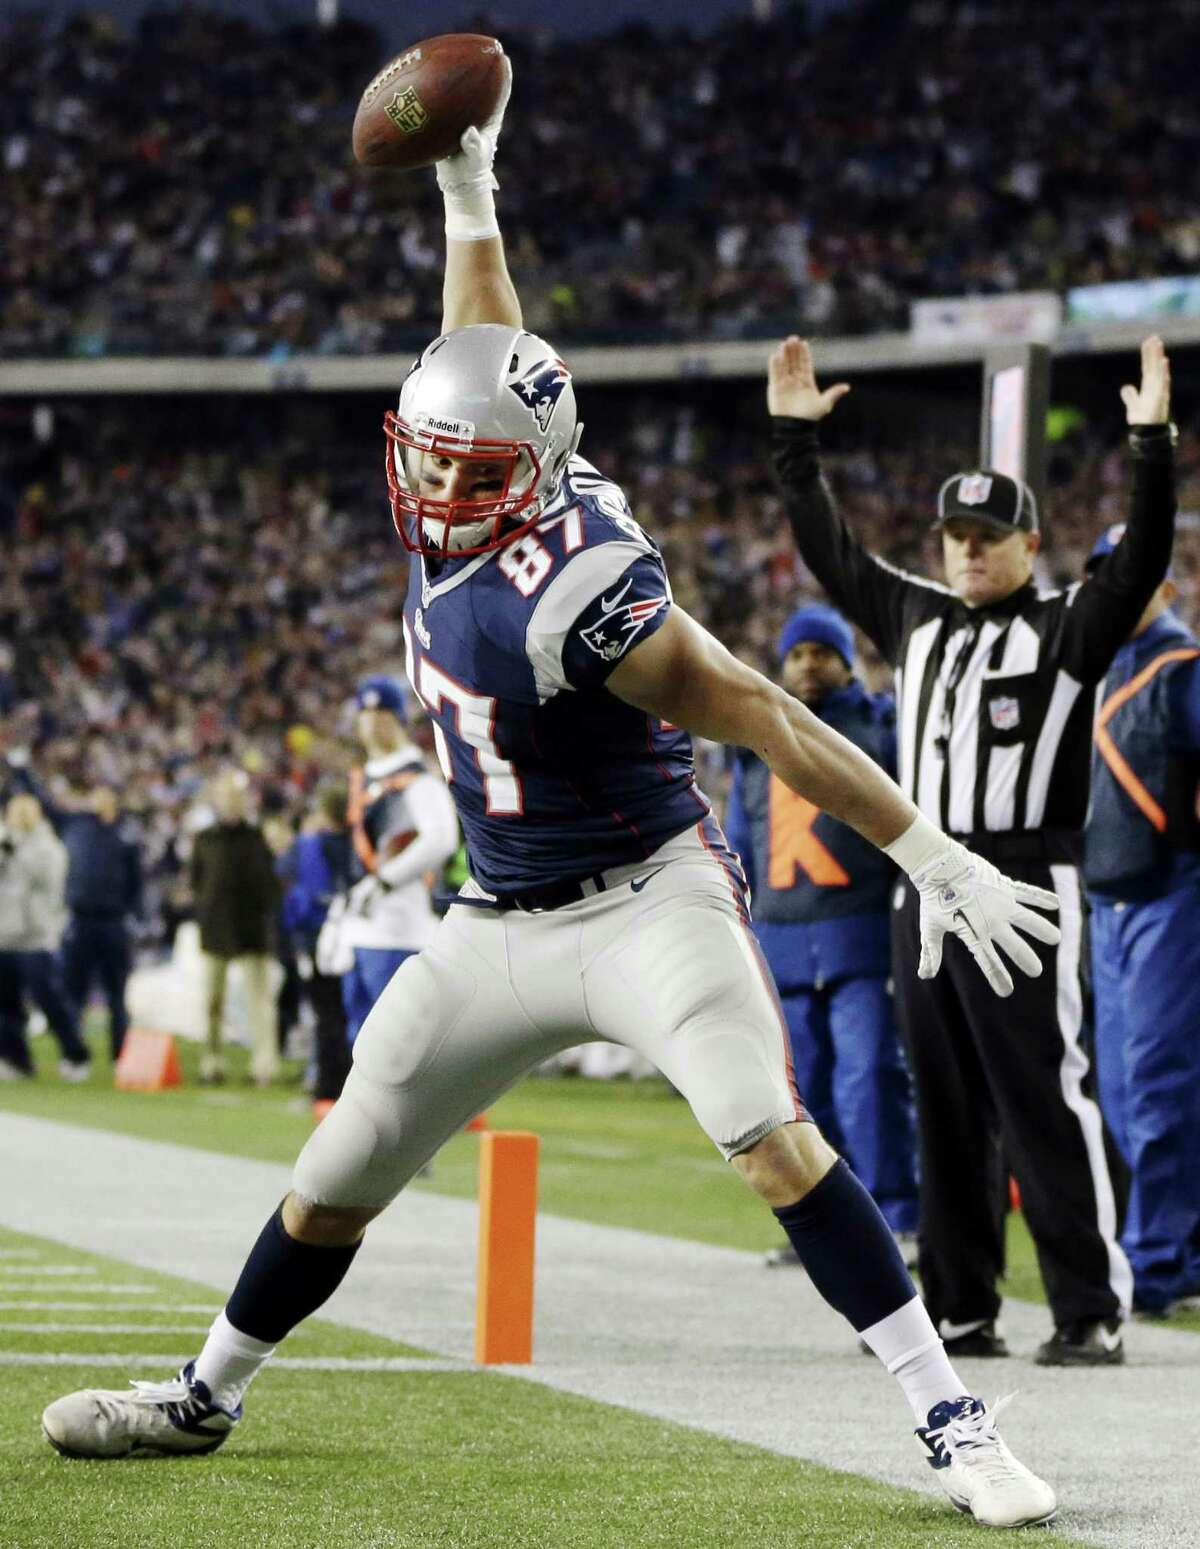 New England Patriots tight end Rob Gronkowski spikes the ball after his touchdown catch against the Indianapolis Colts in the first quarter at Gillette Stadium in Foxborough, Mass., Sunday, Nov. 18, 2012. Photo by Associated Press